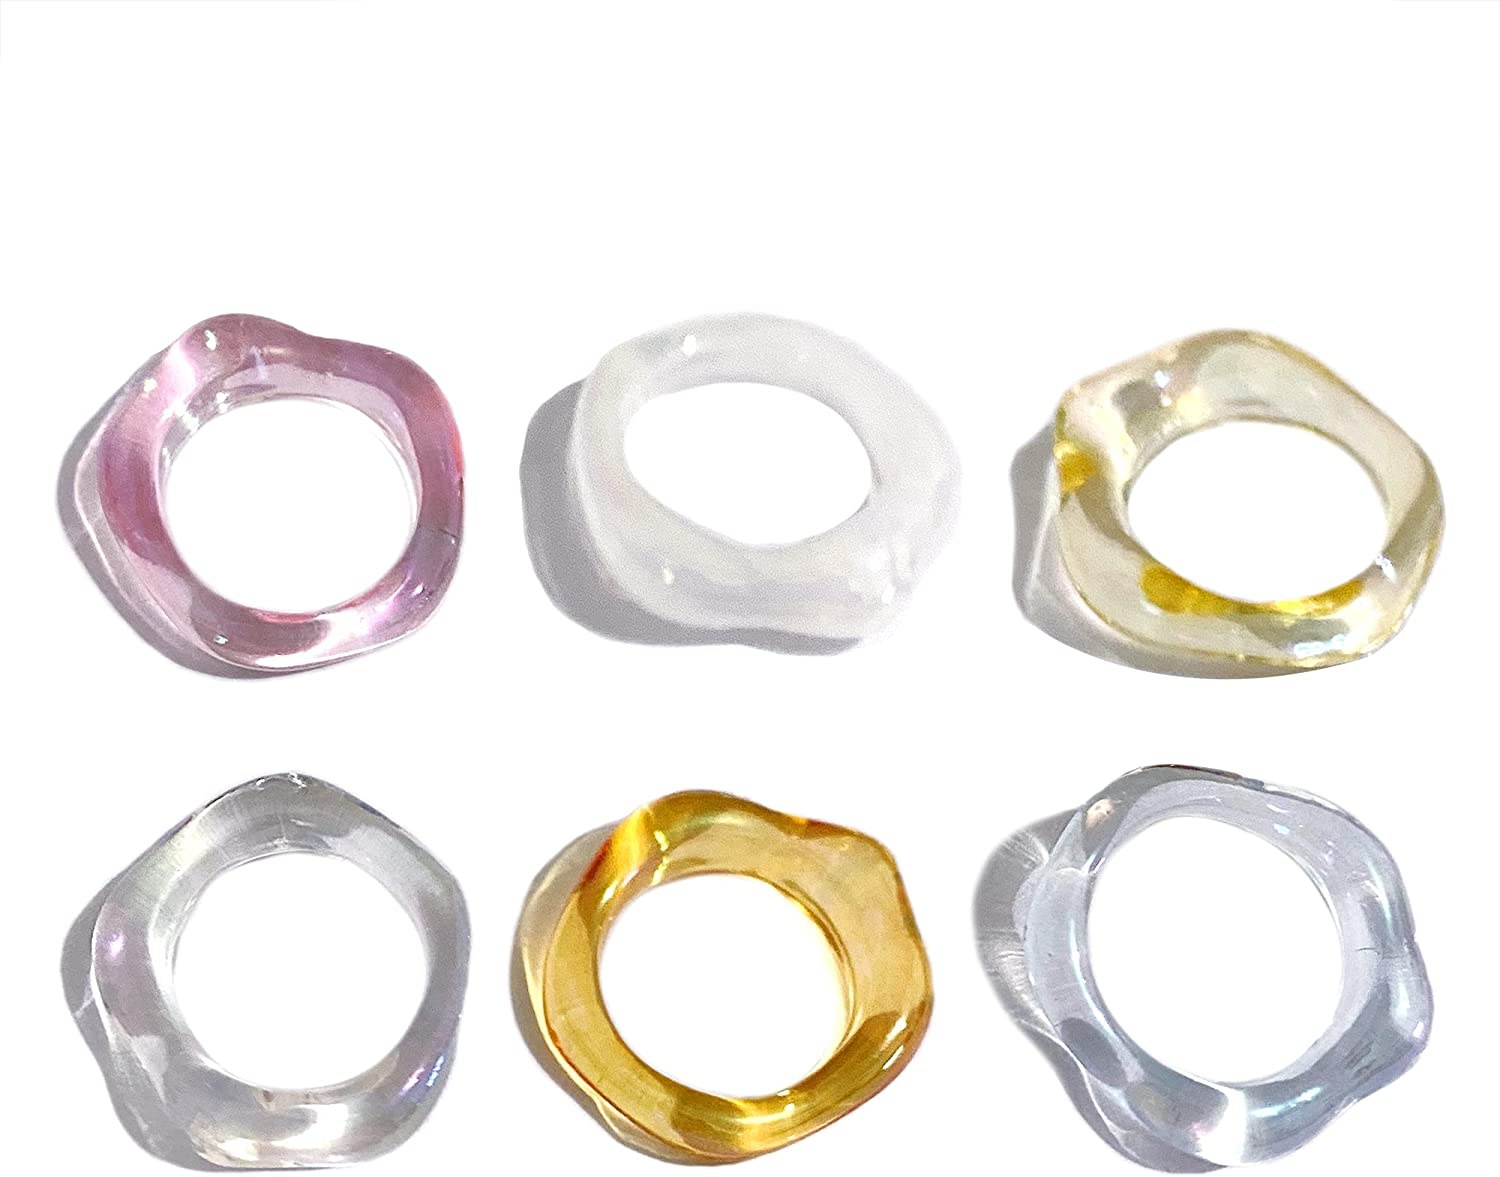 6Pcs Resin Plastic Colorful Polygon Rings Sets Acrylic Geometric Knuckle Finger Stackable Joint Ring Transparent Party Jewelry for Women Teen Girls